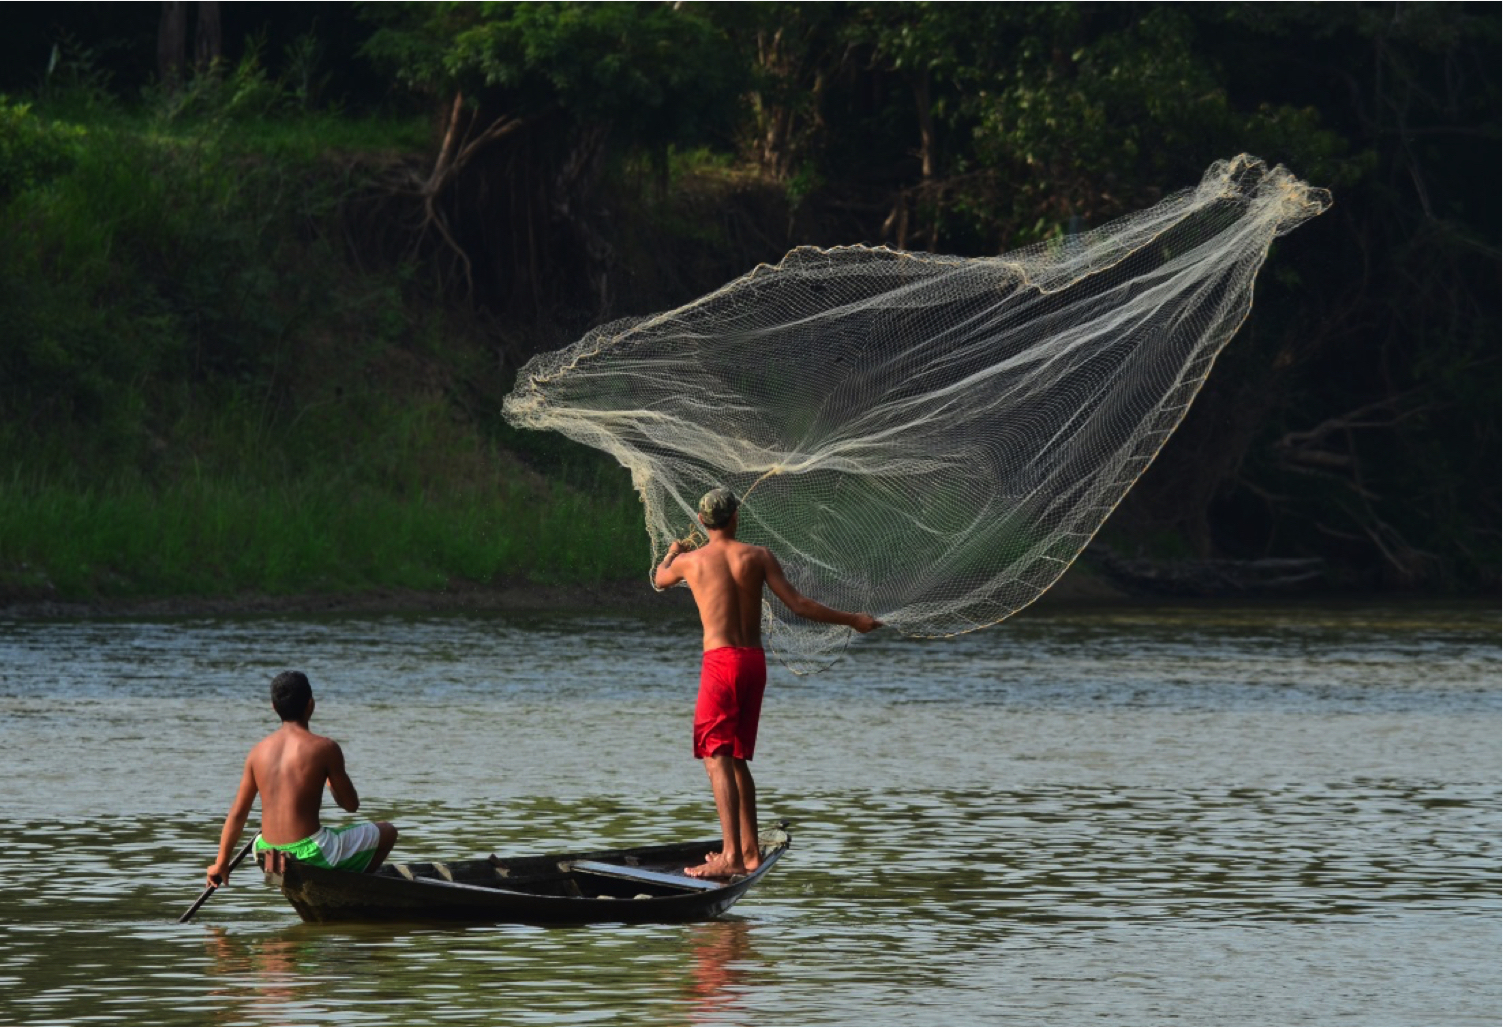 Fishing, Amazon, Brazil, Supplier Photo, (Rio Life)